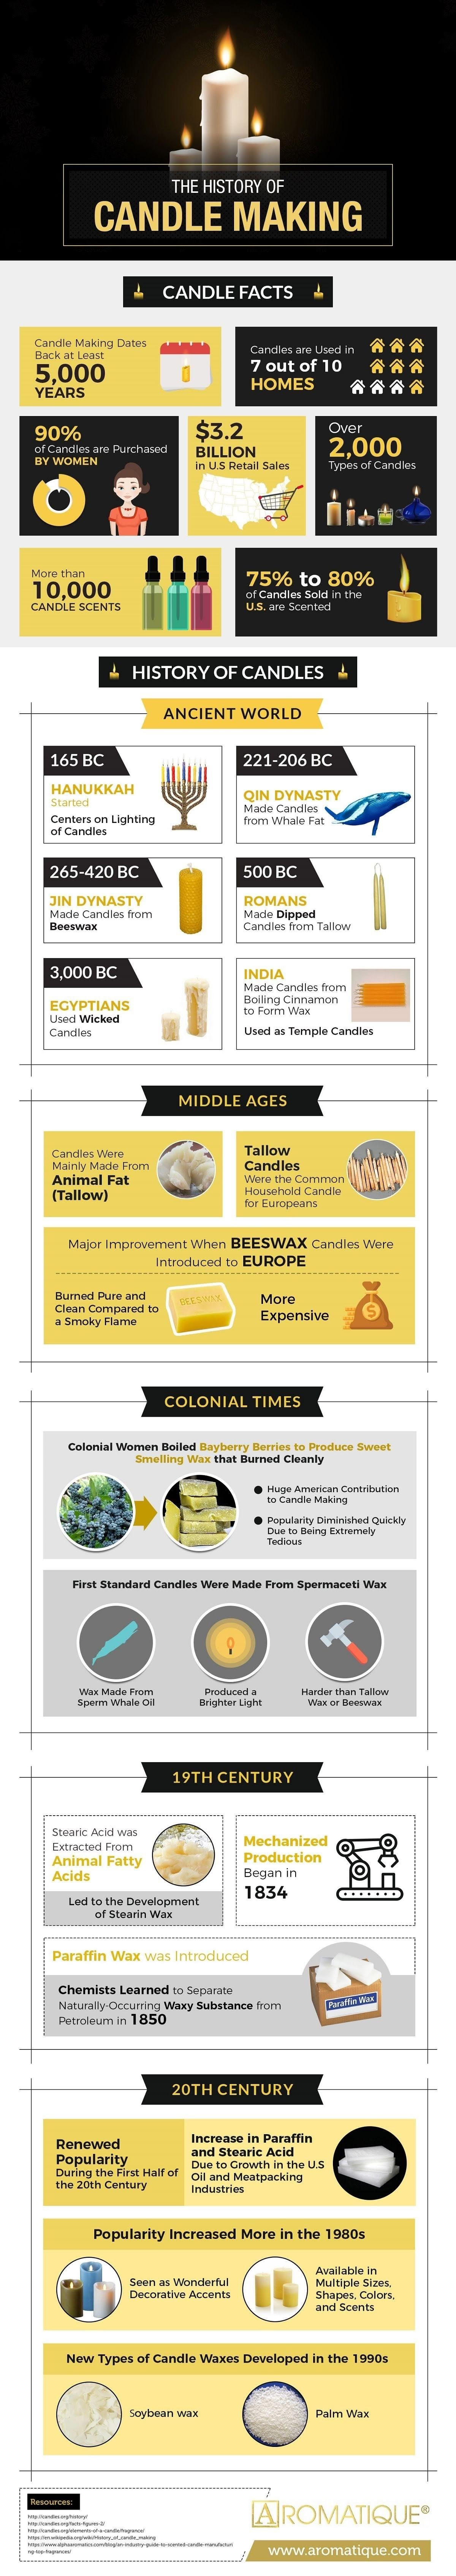 History of the candle #infographic